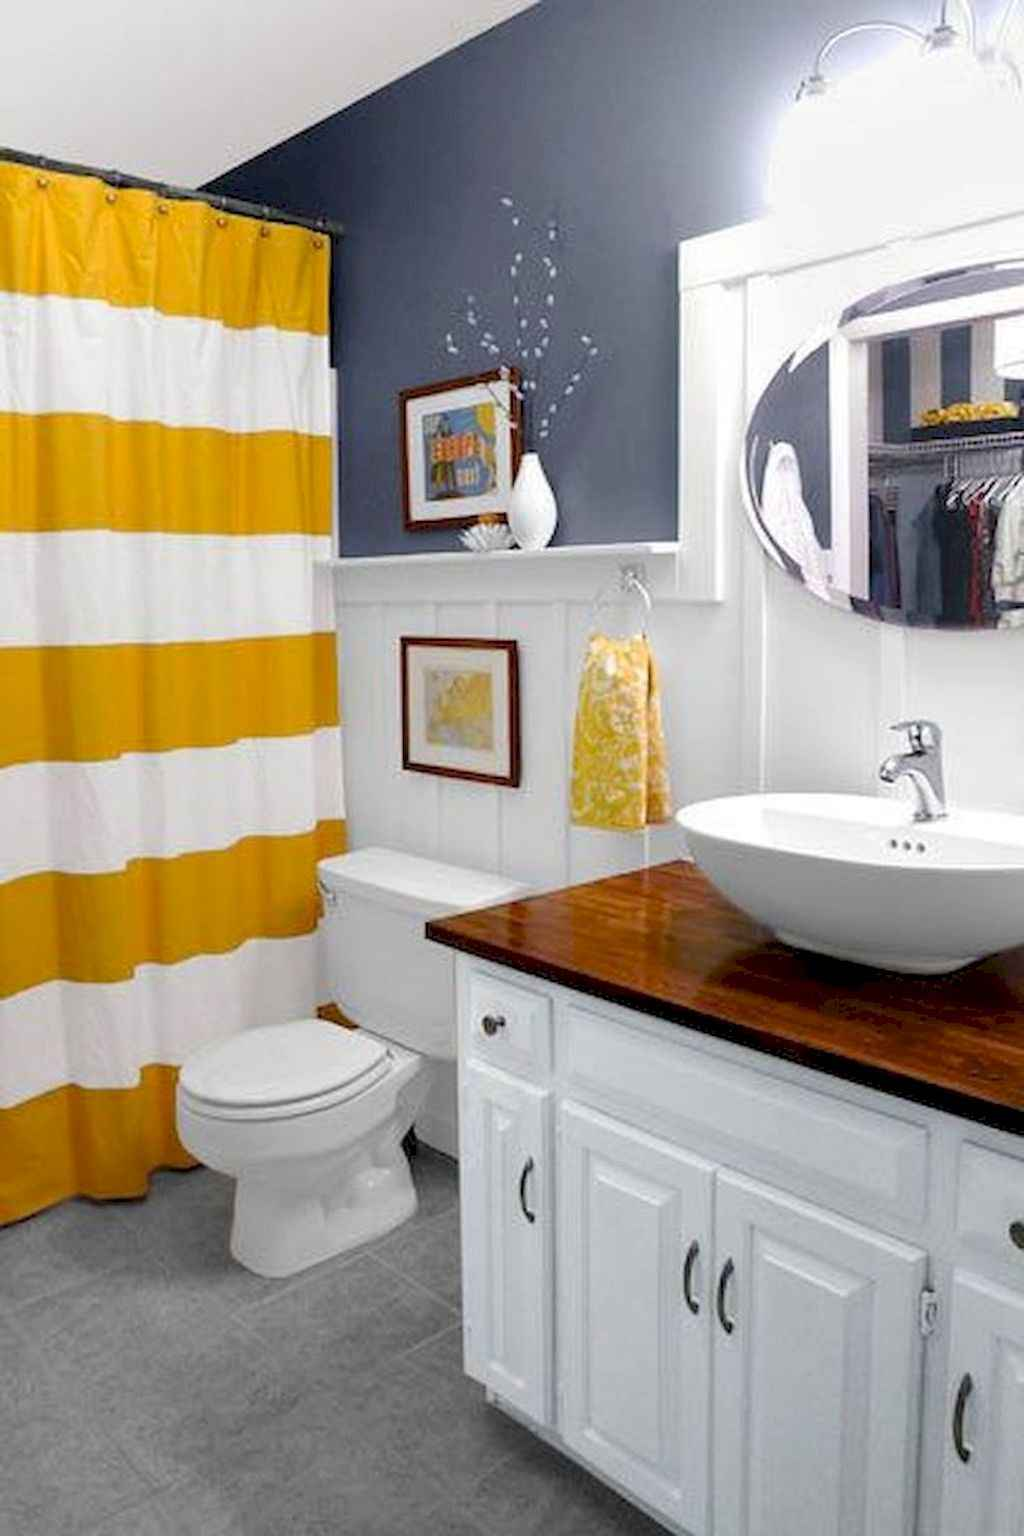 55 Cool and Relax Bathroom Decor Ideas (32)